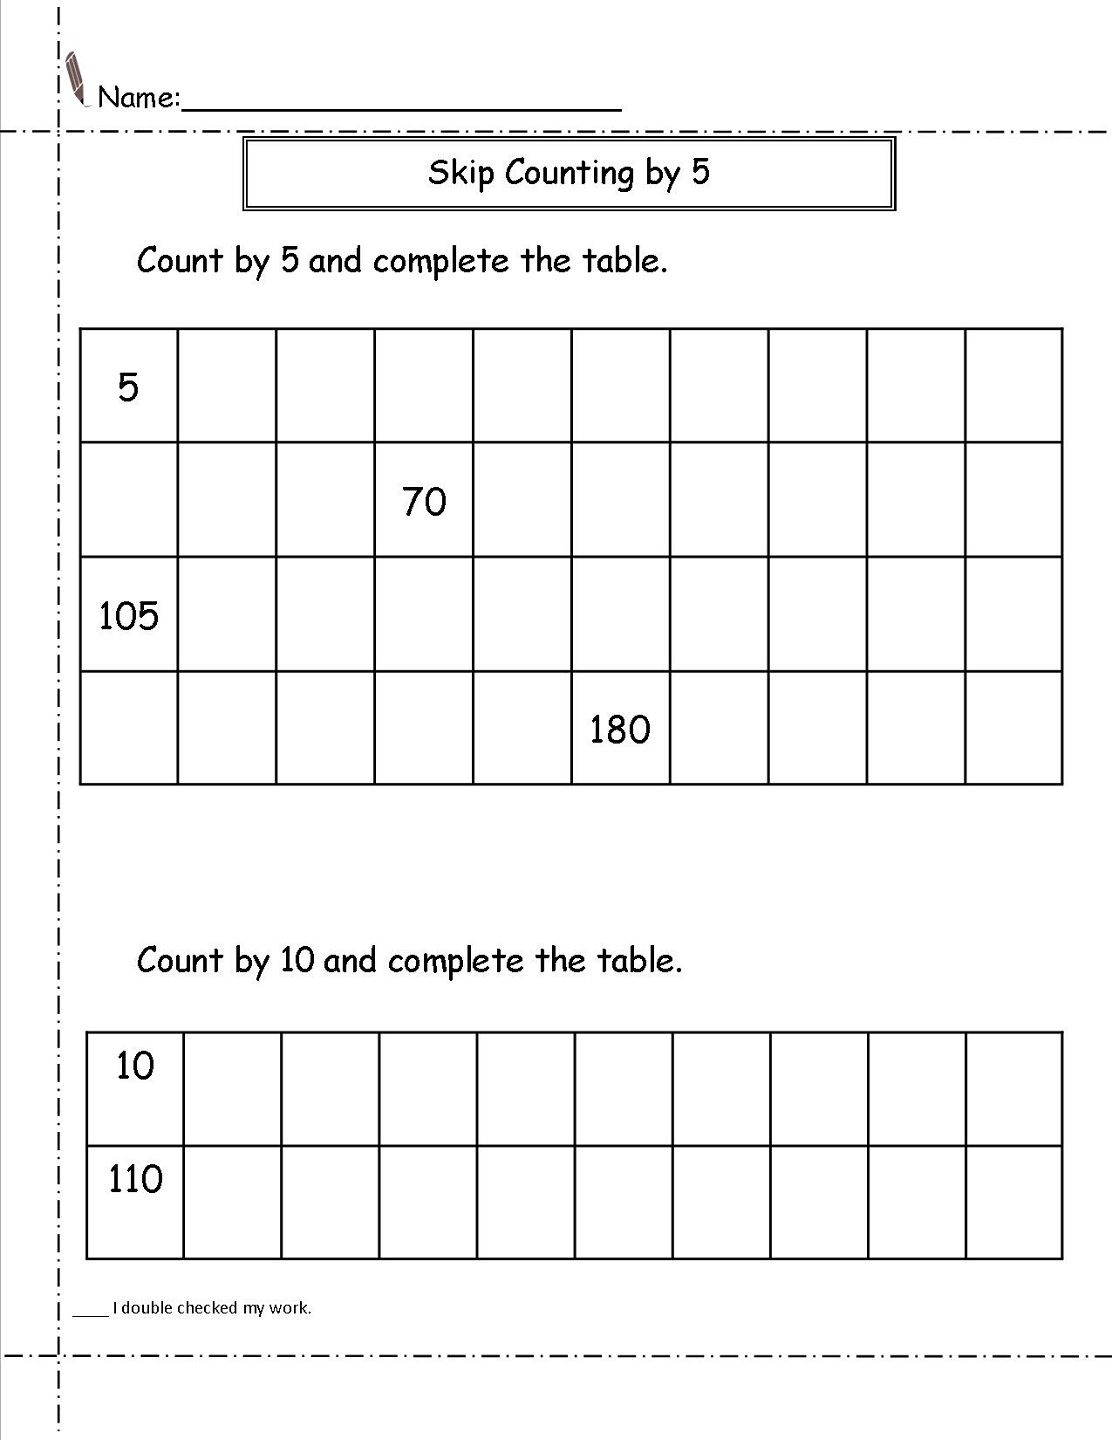 Skip Count By 5 Worksheet With Images